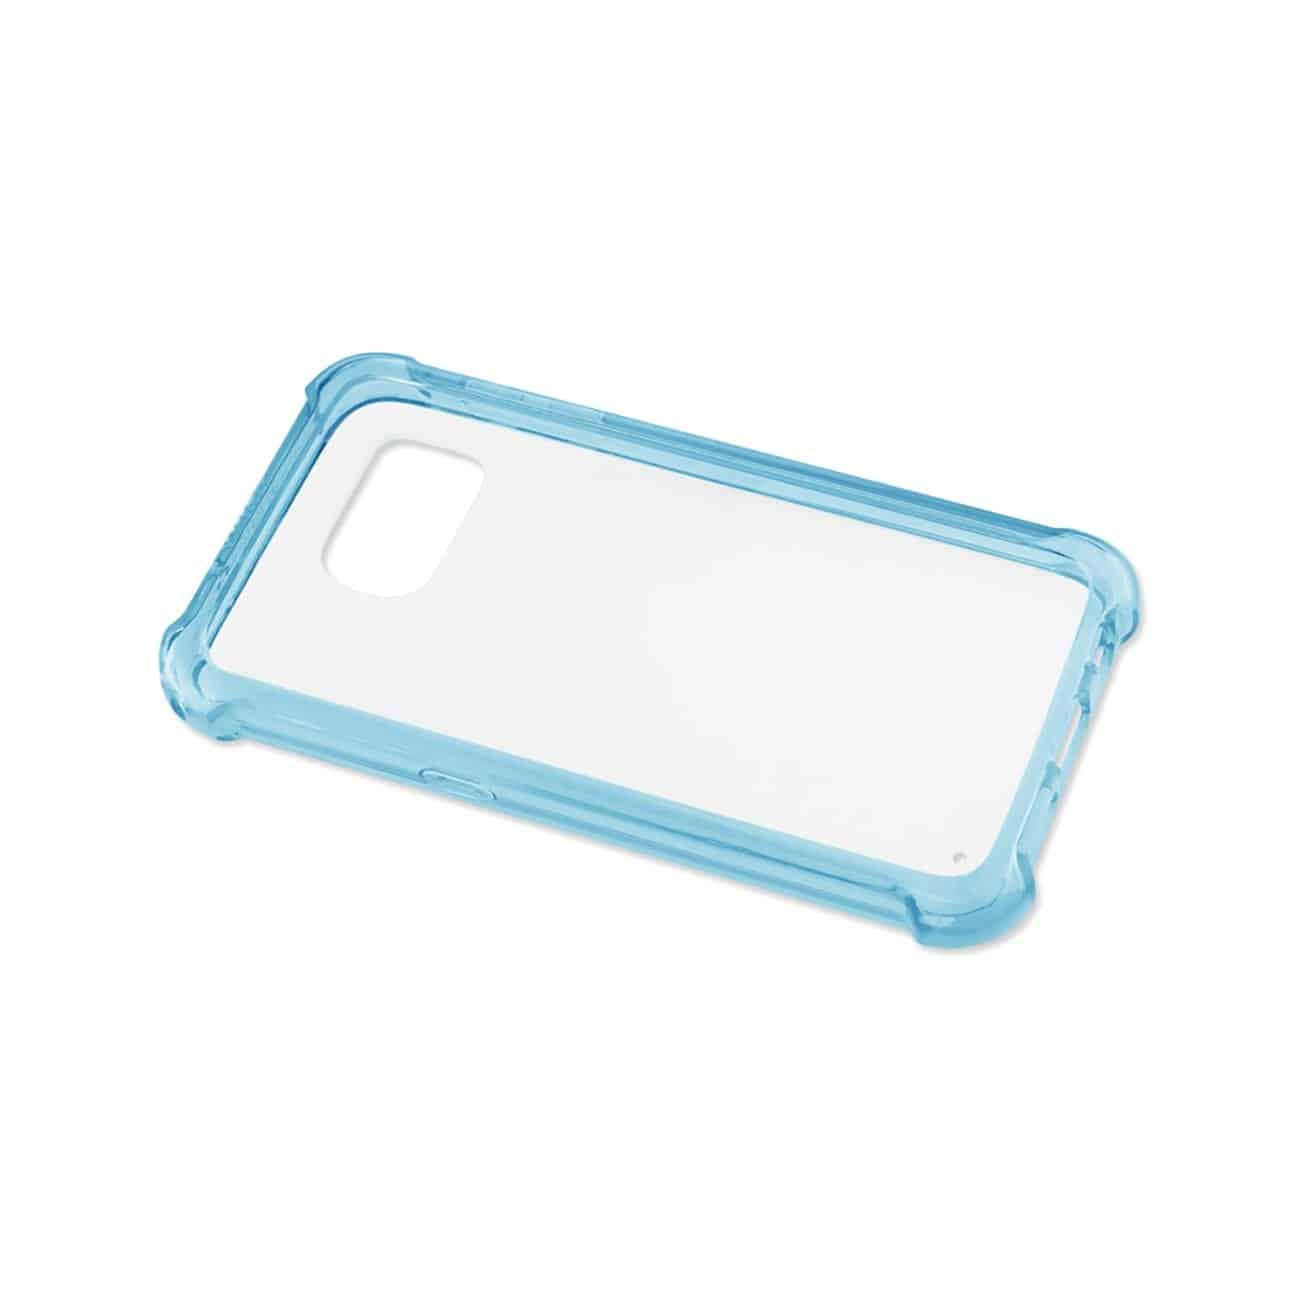 SAMSUNG GALAXY S7 CLEAR BUMPER CASE WITH AIR CUSHION PROTECTION IN CLEAR NAVY